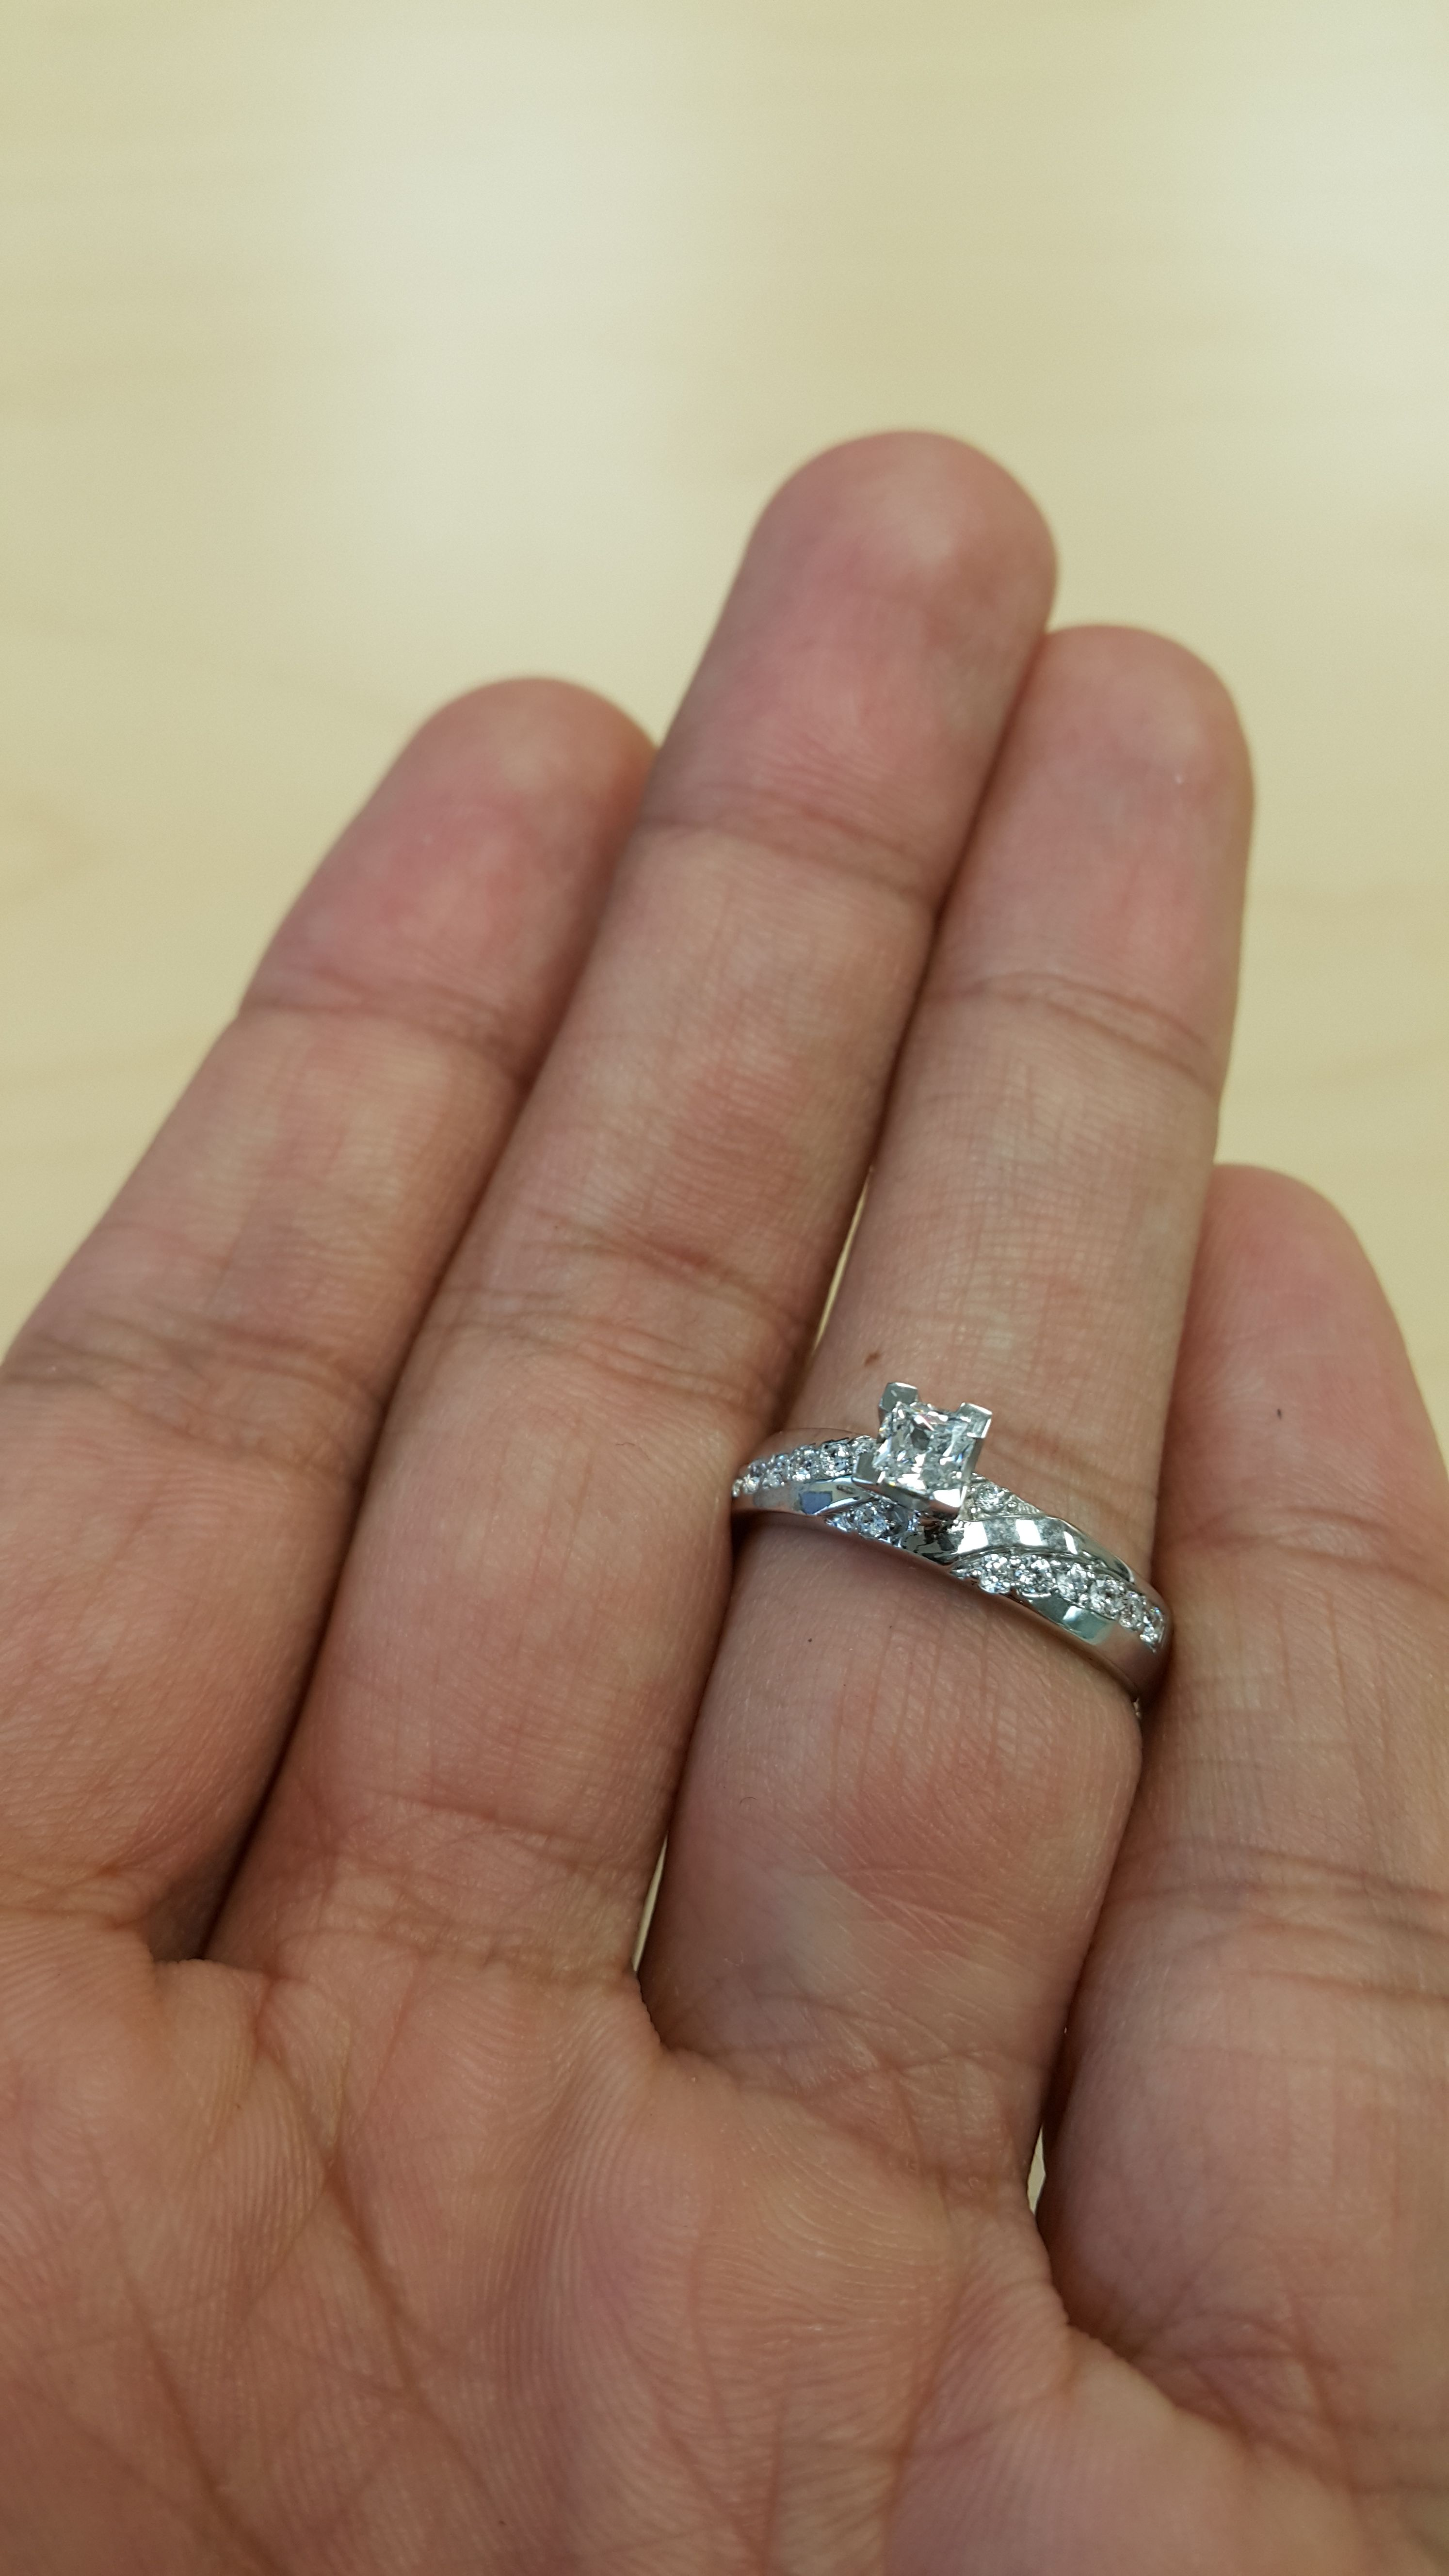 Rings on Hand Engagement Ring BT168WE Wedding ring